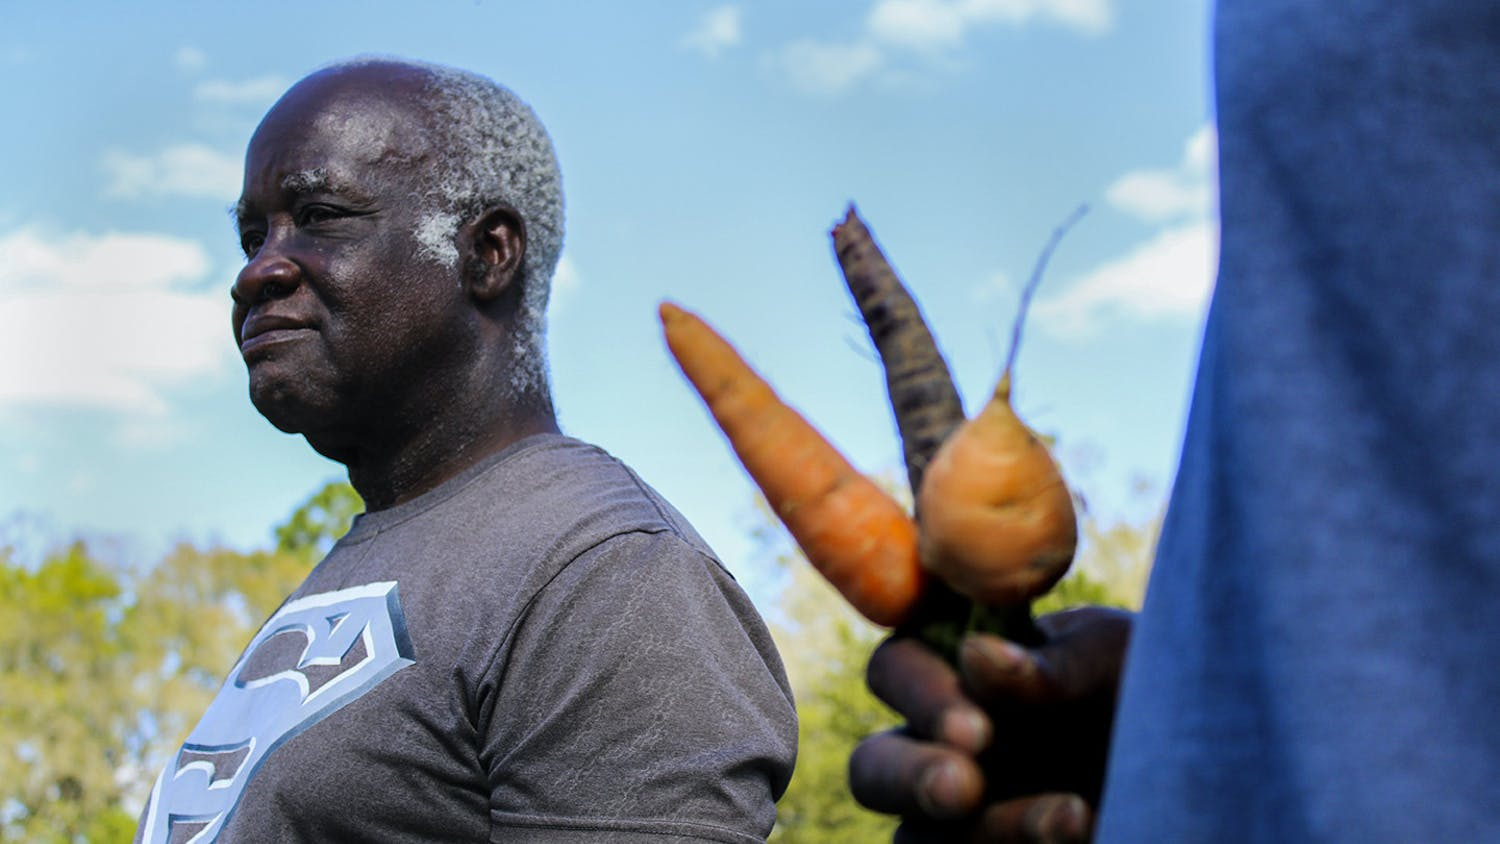 Lennon Fisher Jr. holds three different kinds of carrots in his hand while Lennon Fisher looks at the field. They said some of their favorite produce are their carrots.